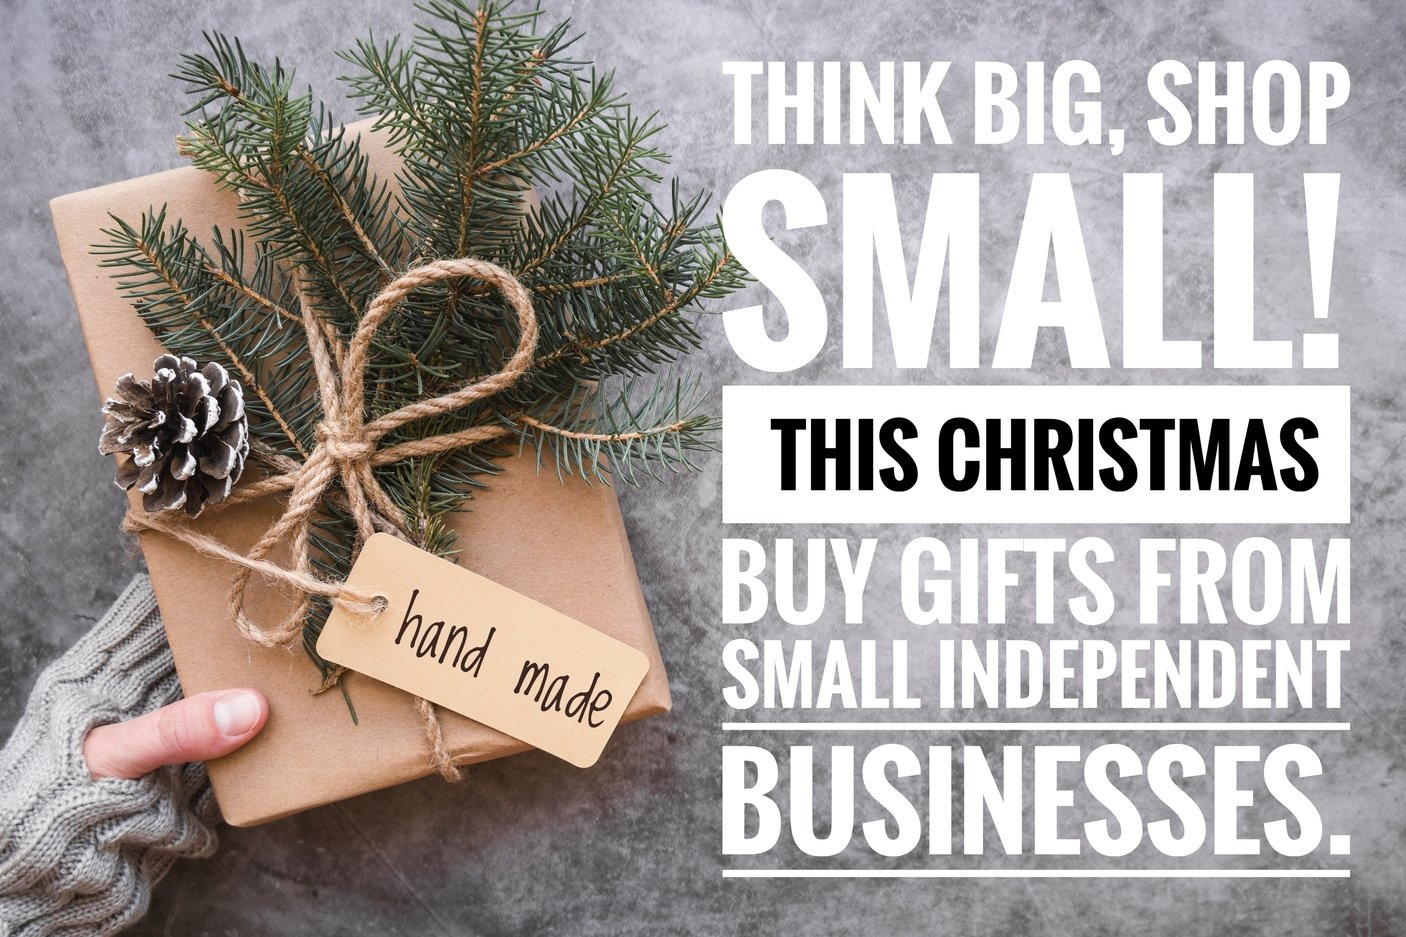 Shop At Small Independent Businesses This Holiday Season!